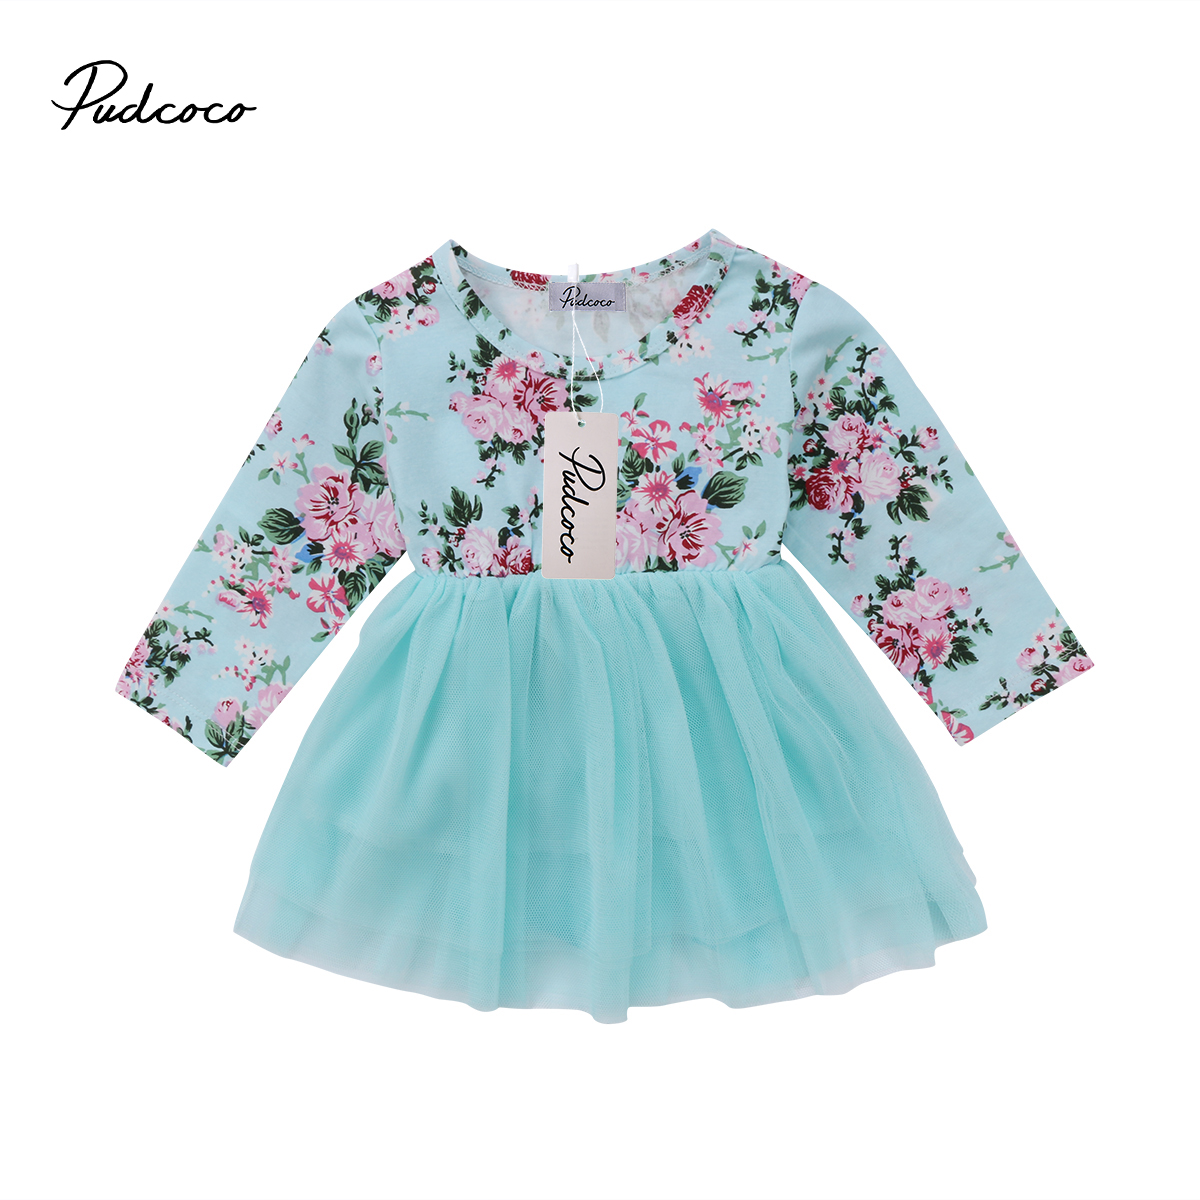 Pudcoco Newborn Kid Baby Girls Clothes Cotton Long Sleeve O-Neck Floral Tulle Dress 0-18 Months Helen115